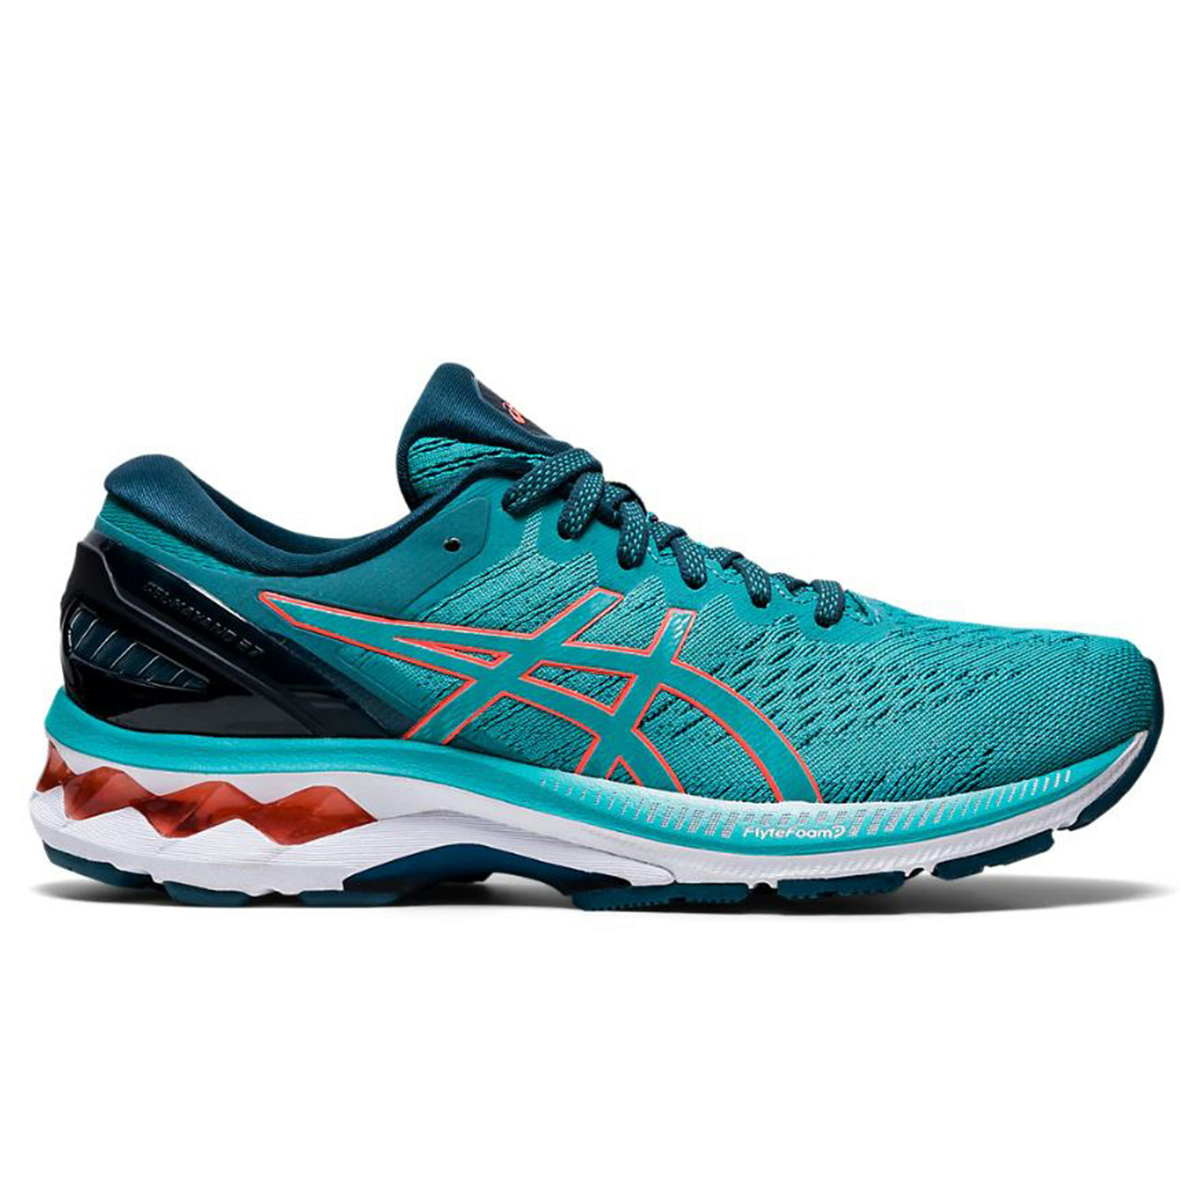 GEL-KAYANO 27 W blau